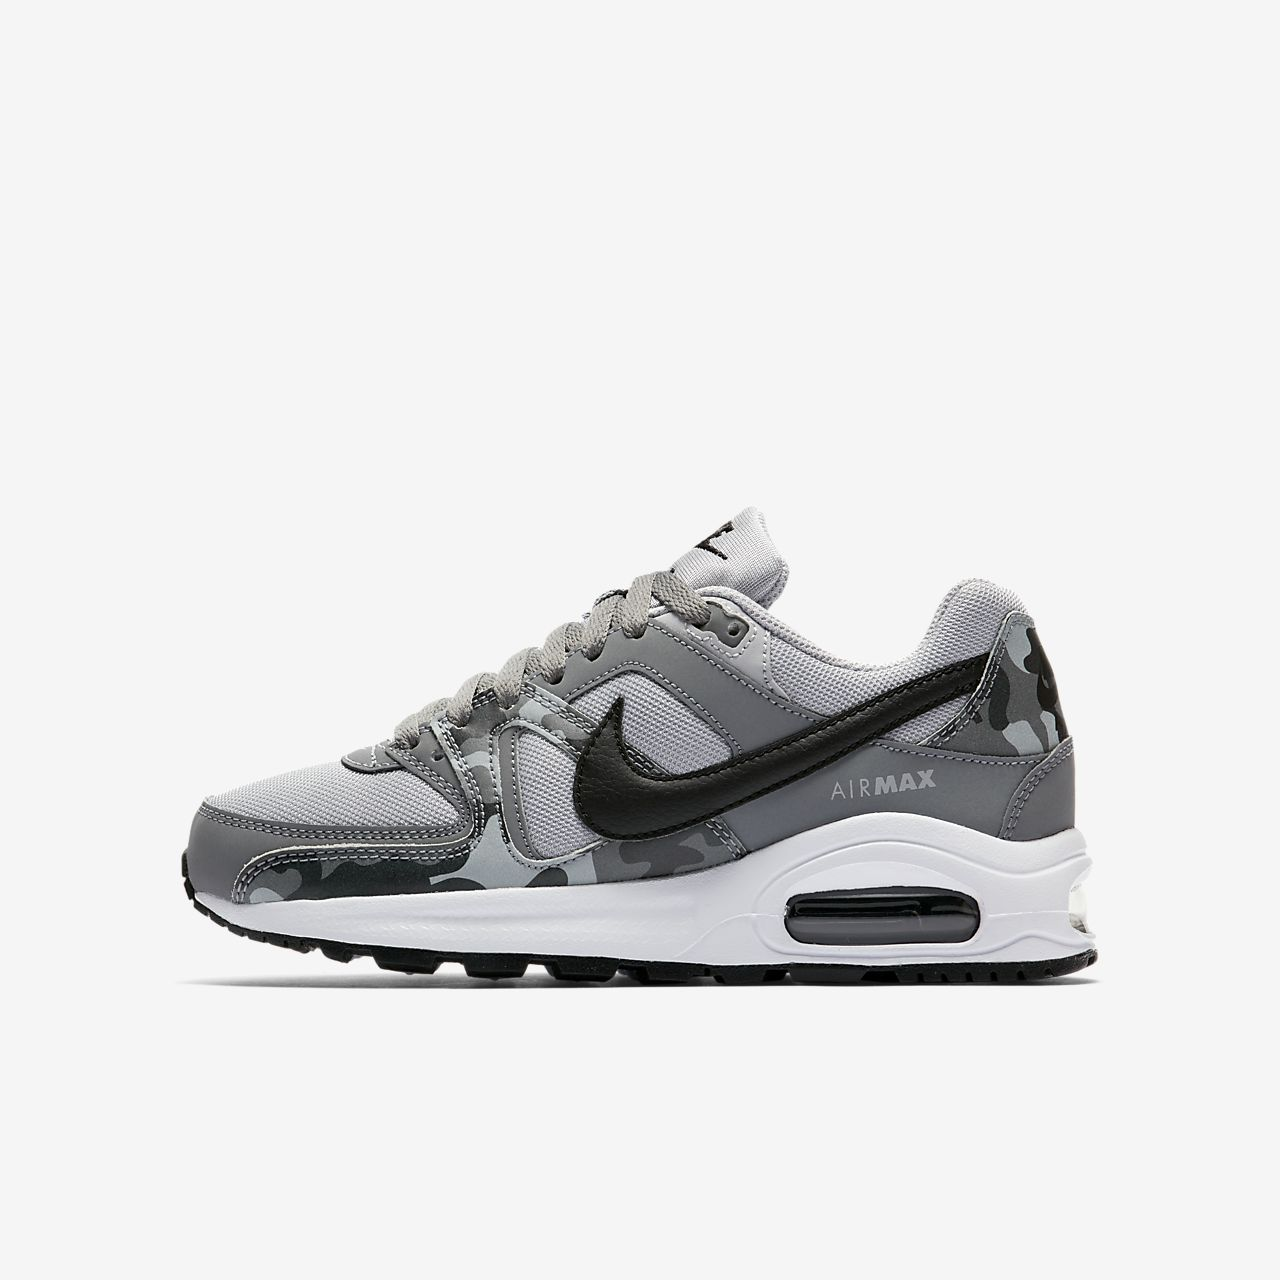 low priced e8a99 8b476 low price nike air max command le gray bianca nero 1c91a ed5c1